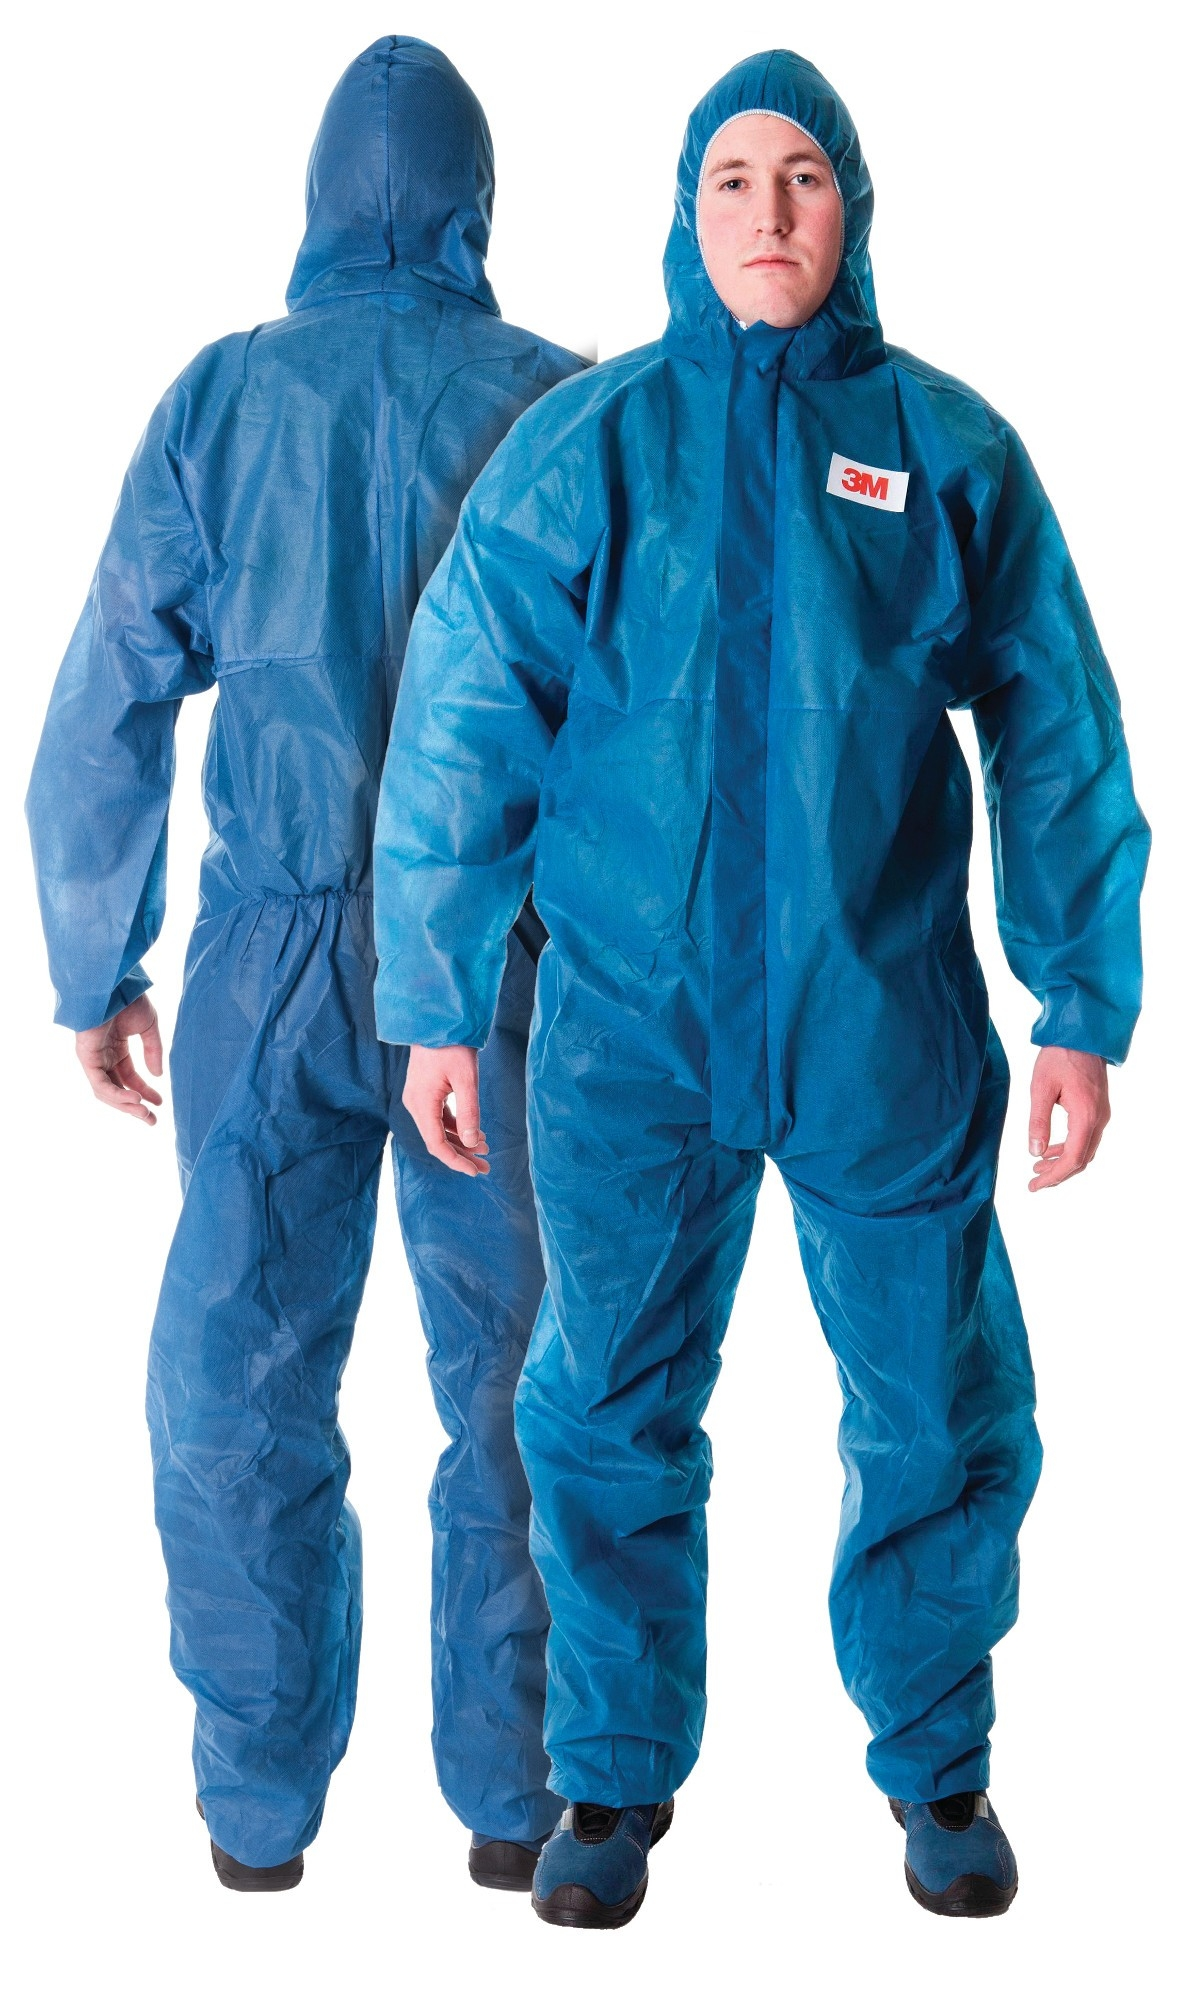 3M DISPOSABLE LARGE COVERALL 4500 - EHM Live